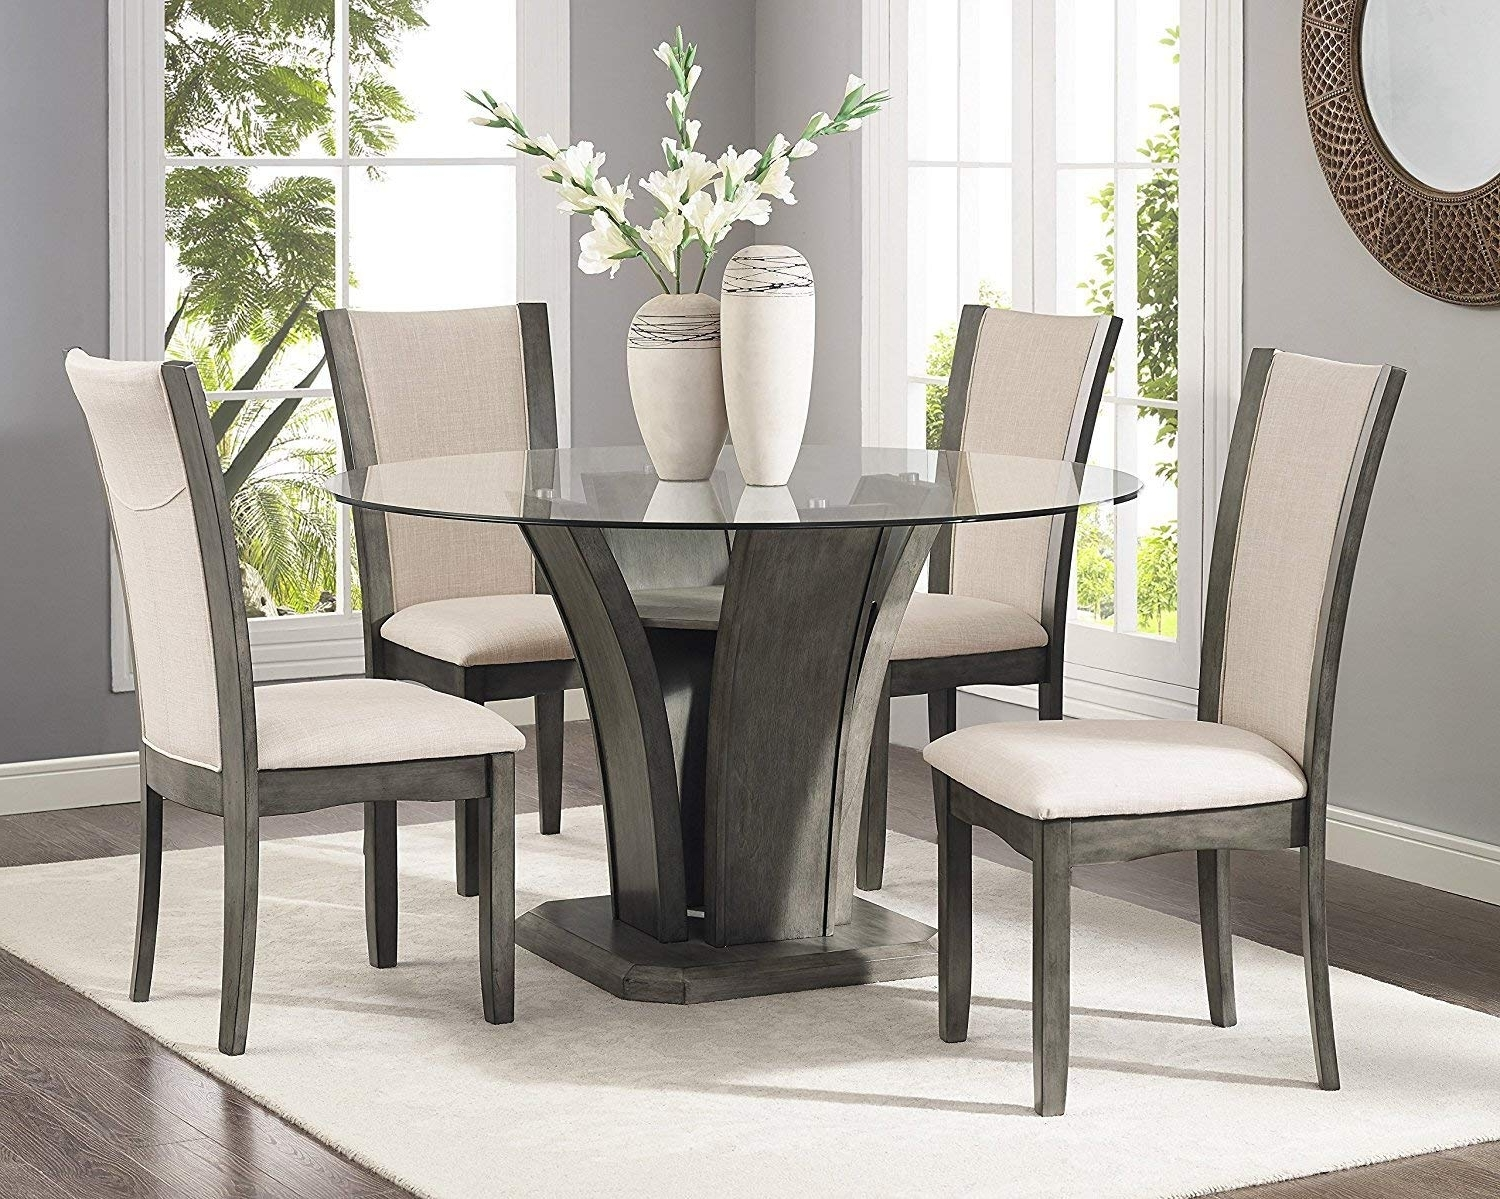 Amazon – Roundhill Furniture D051Gy Kecco Grey 5 Piece Glass Top Throughout Widely Used Laurent 5 Piece Round Dining Sets With Wood Chairs (View 6 of 25)